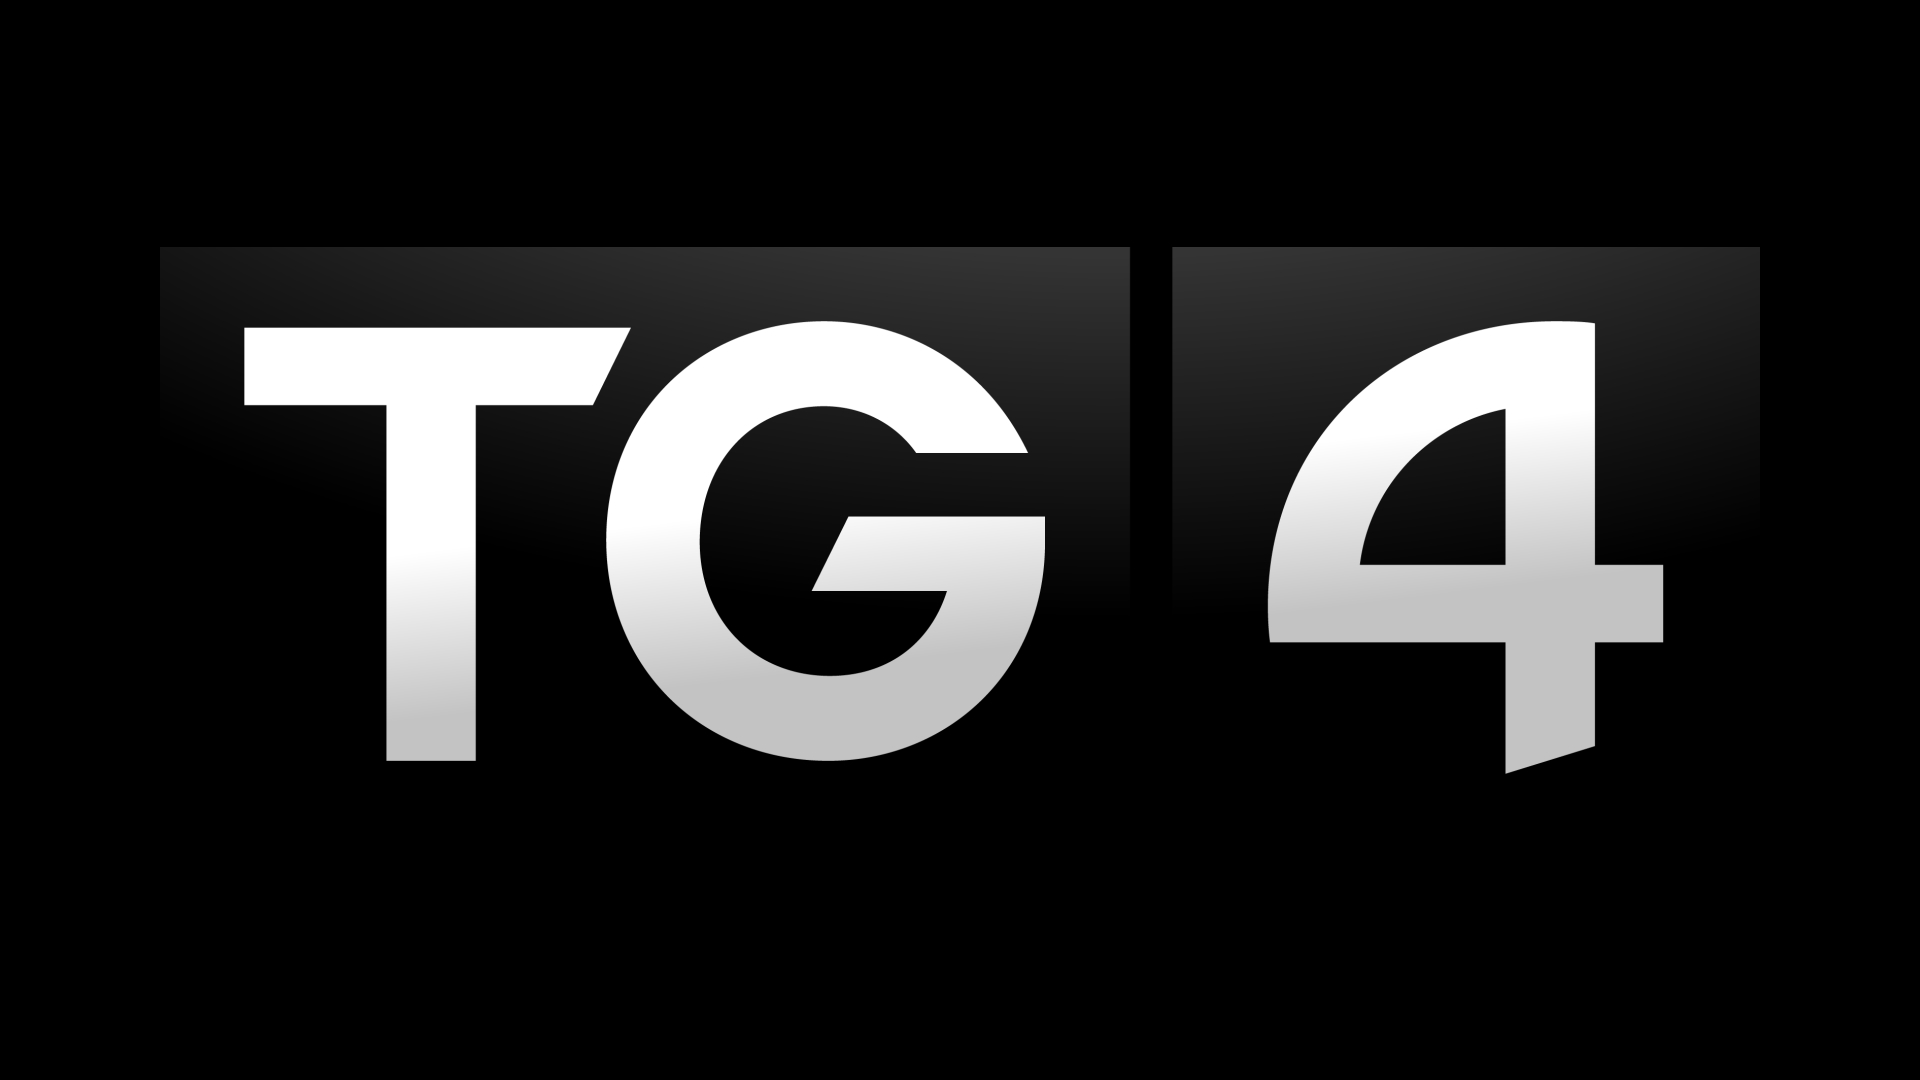 TG4 Live | Live | Irish Television Channel, Súil Eile | TG4